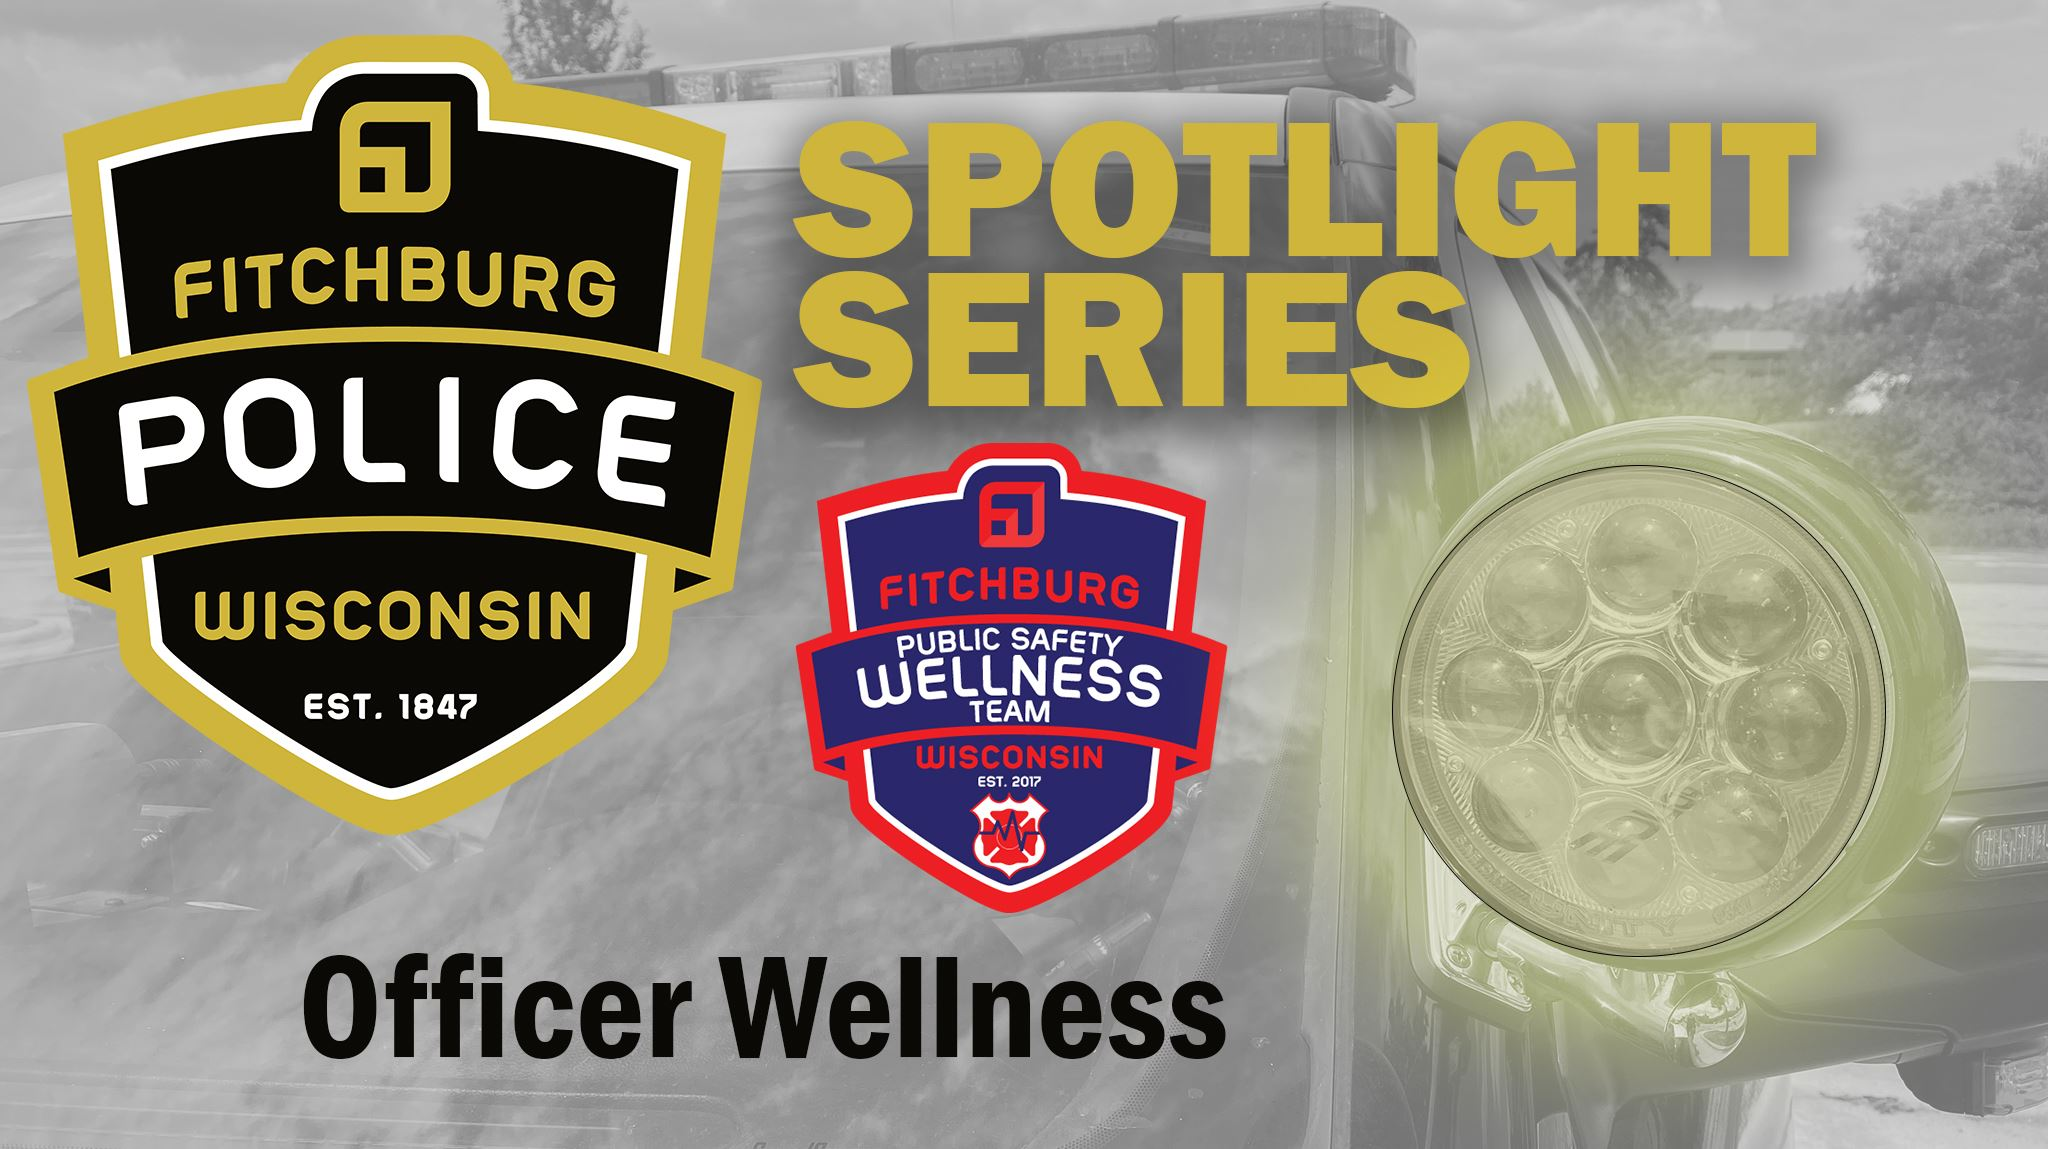 spotlight series_wellness